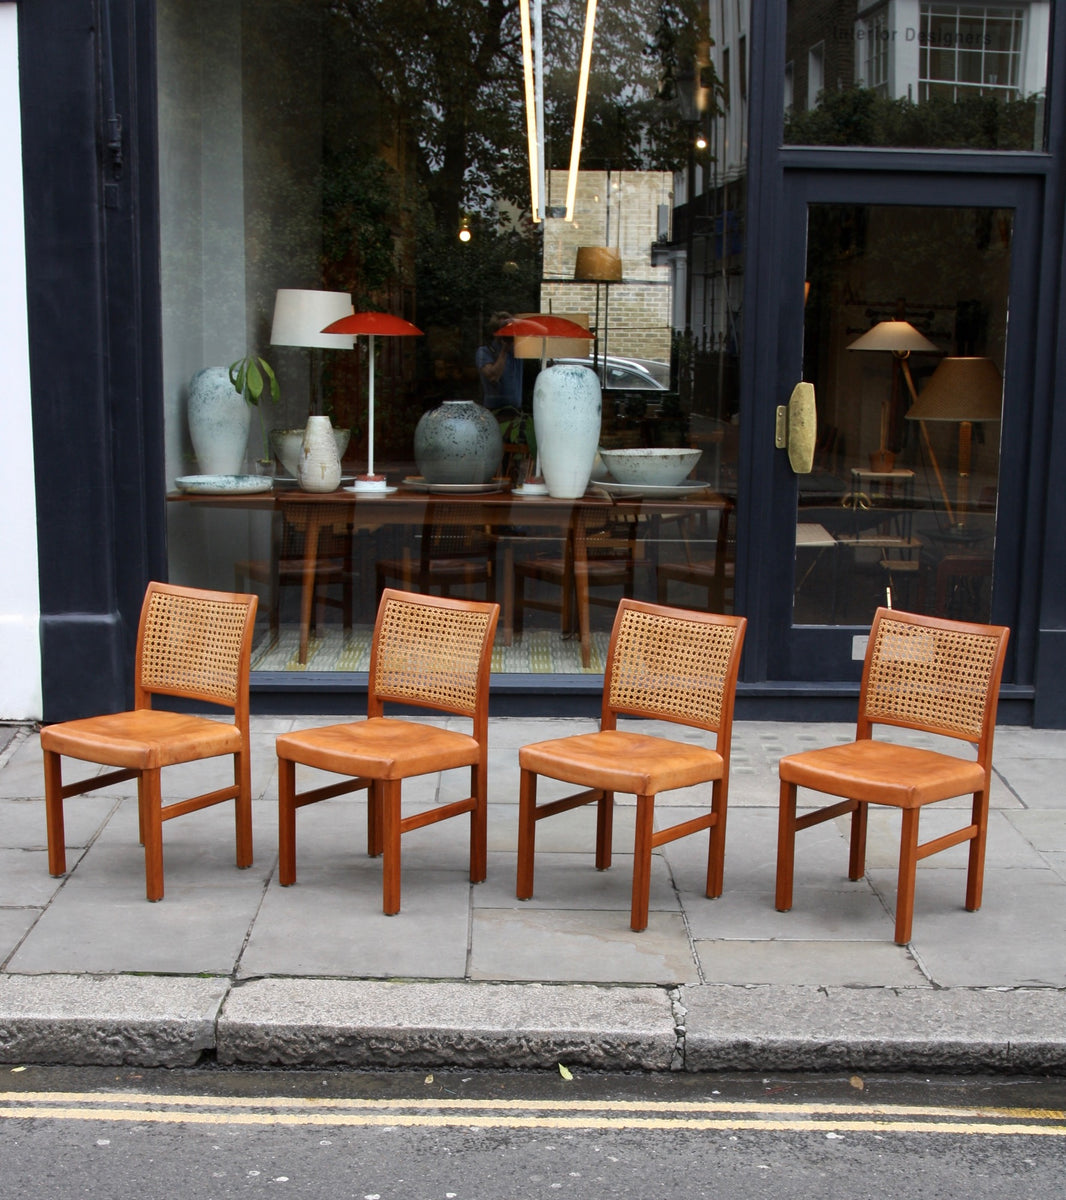 Four Teak, Leather & Cane Chairs Carl-Gustav Hiort af Ornäs  - Image 5